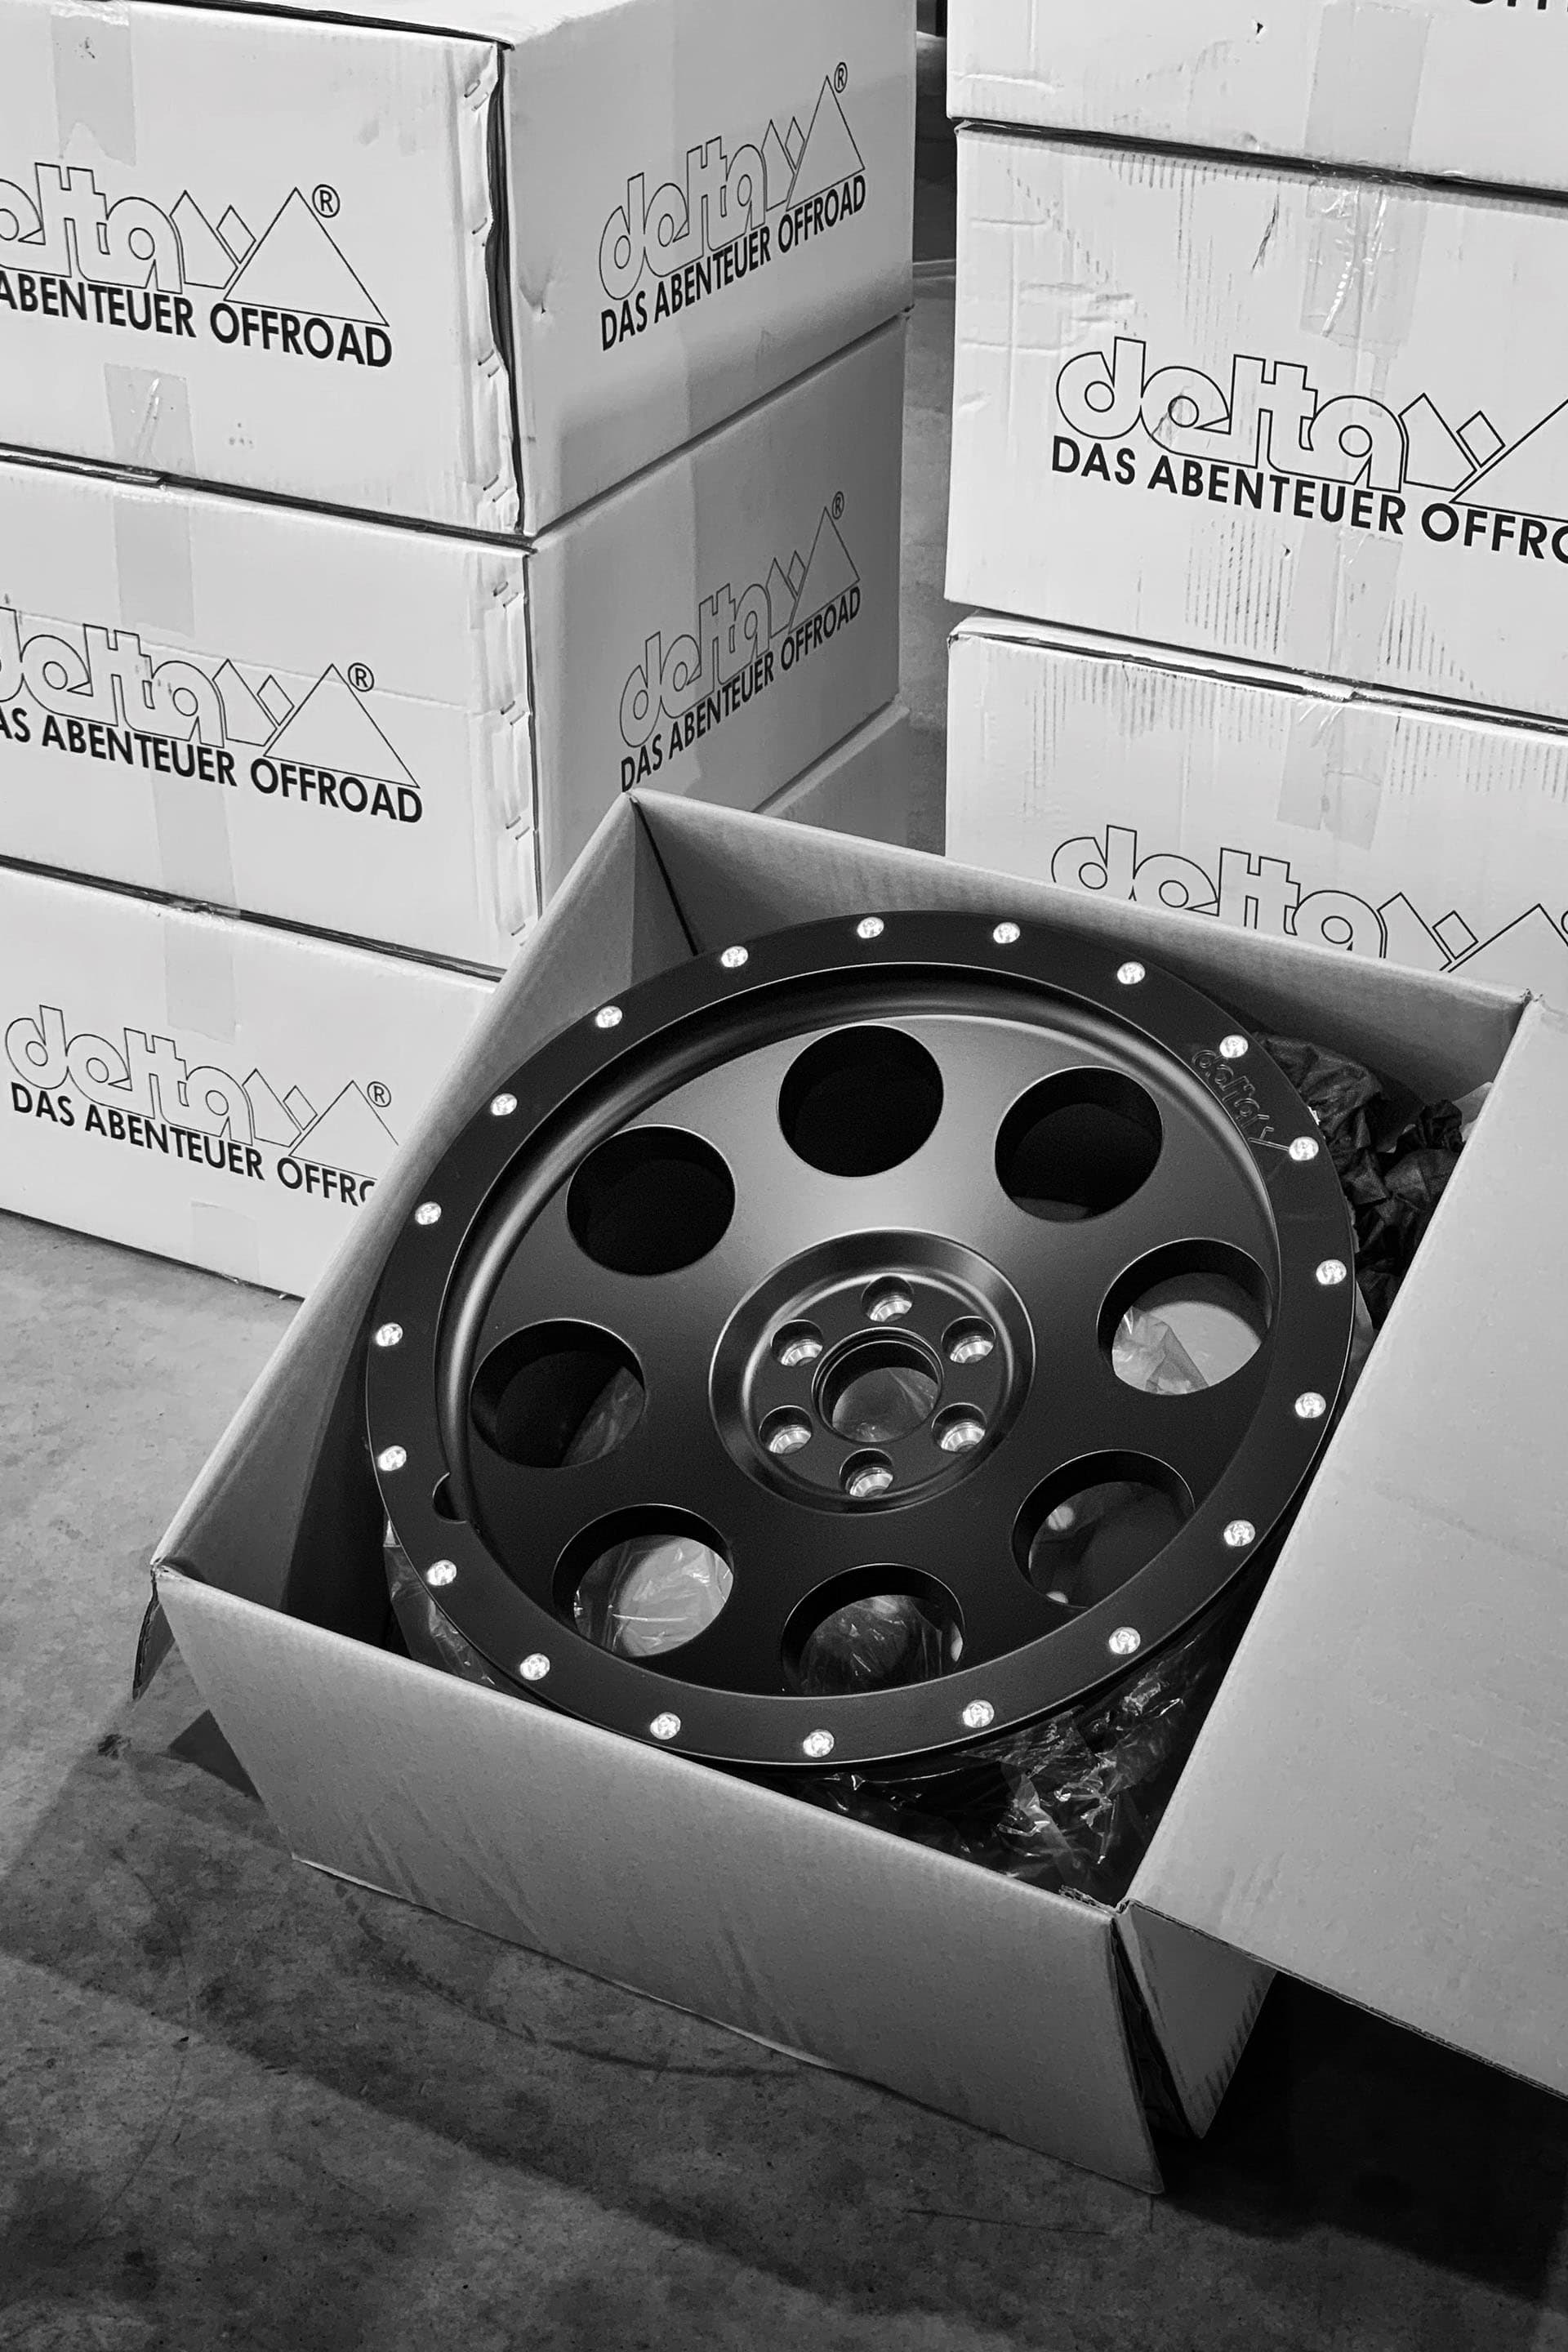 As the first car in Sweden, I got the brand new 20-inch rims from Delta 4x4 that were equipped with some all-round tires from Cooper.